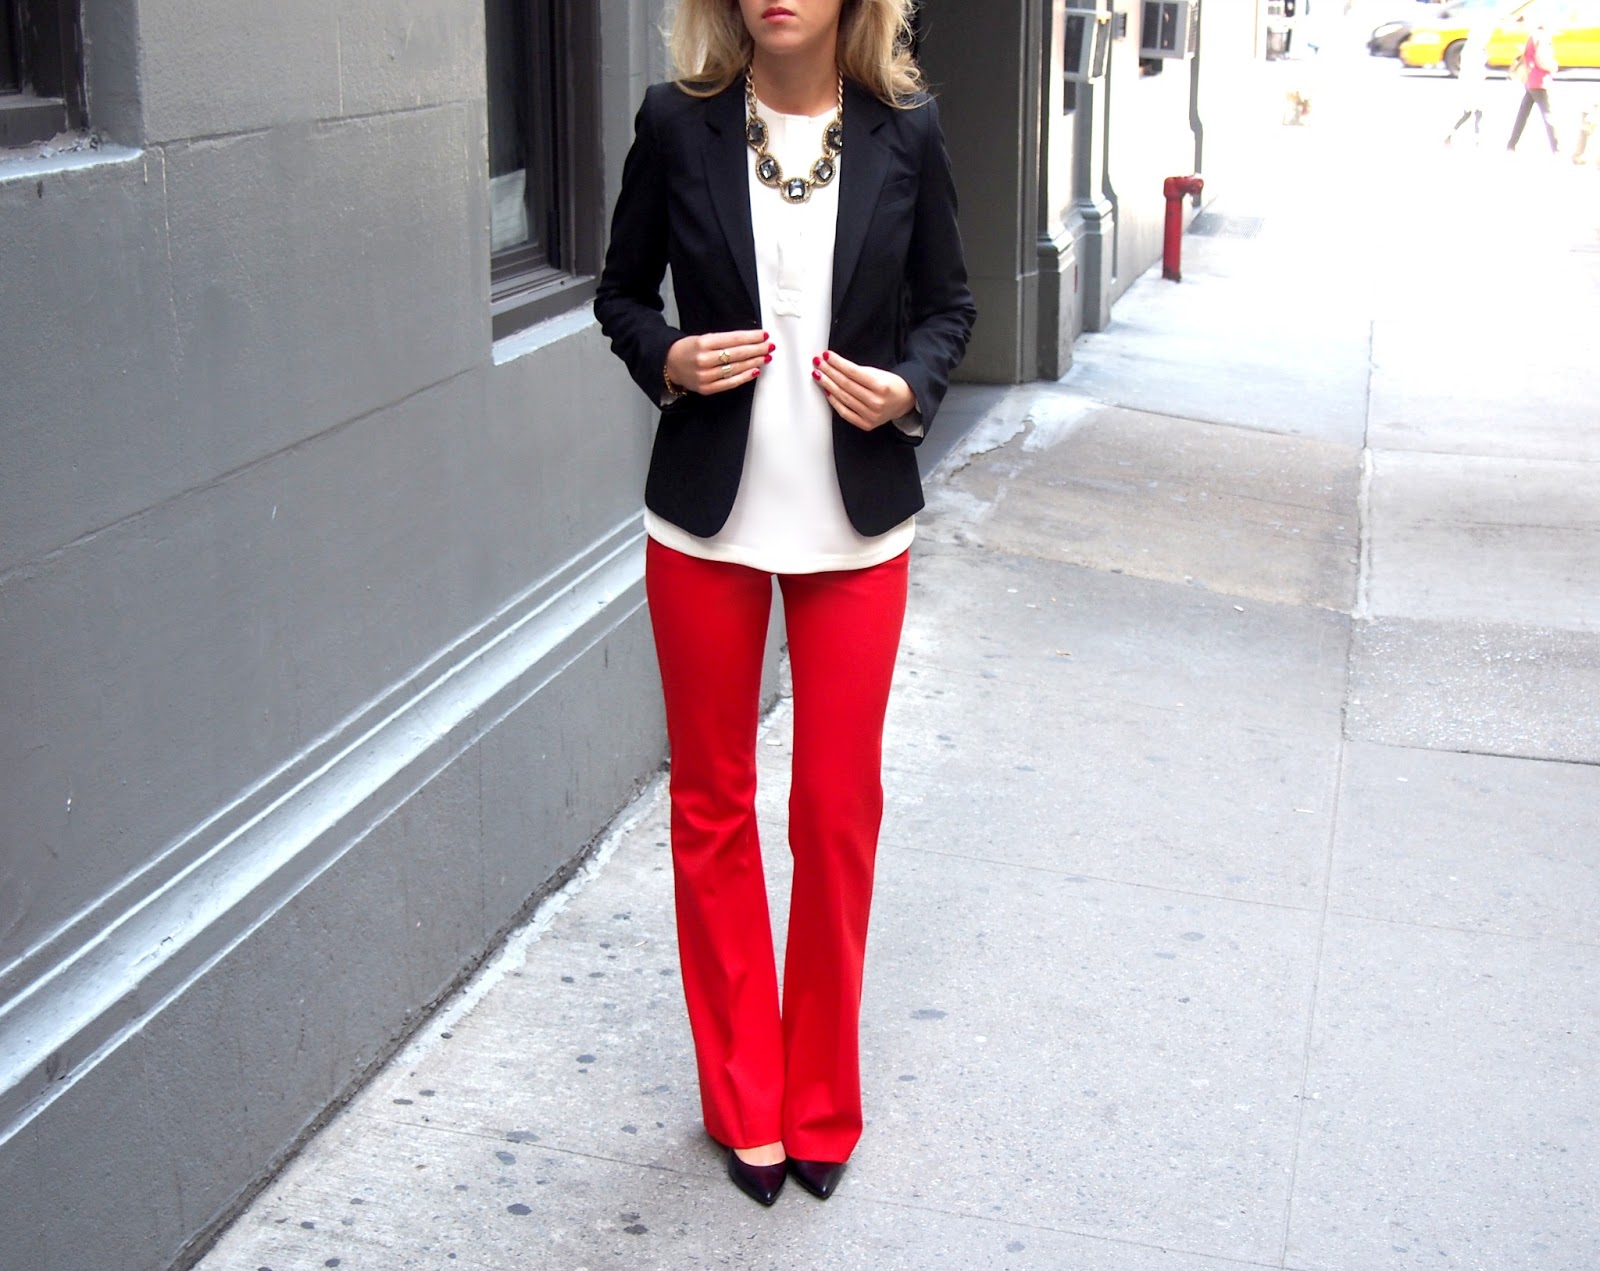 New  Suit WhiteRedBlackin Pant Suits From Women39s Clothing Amp Access